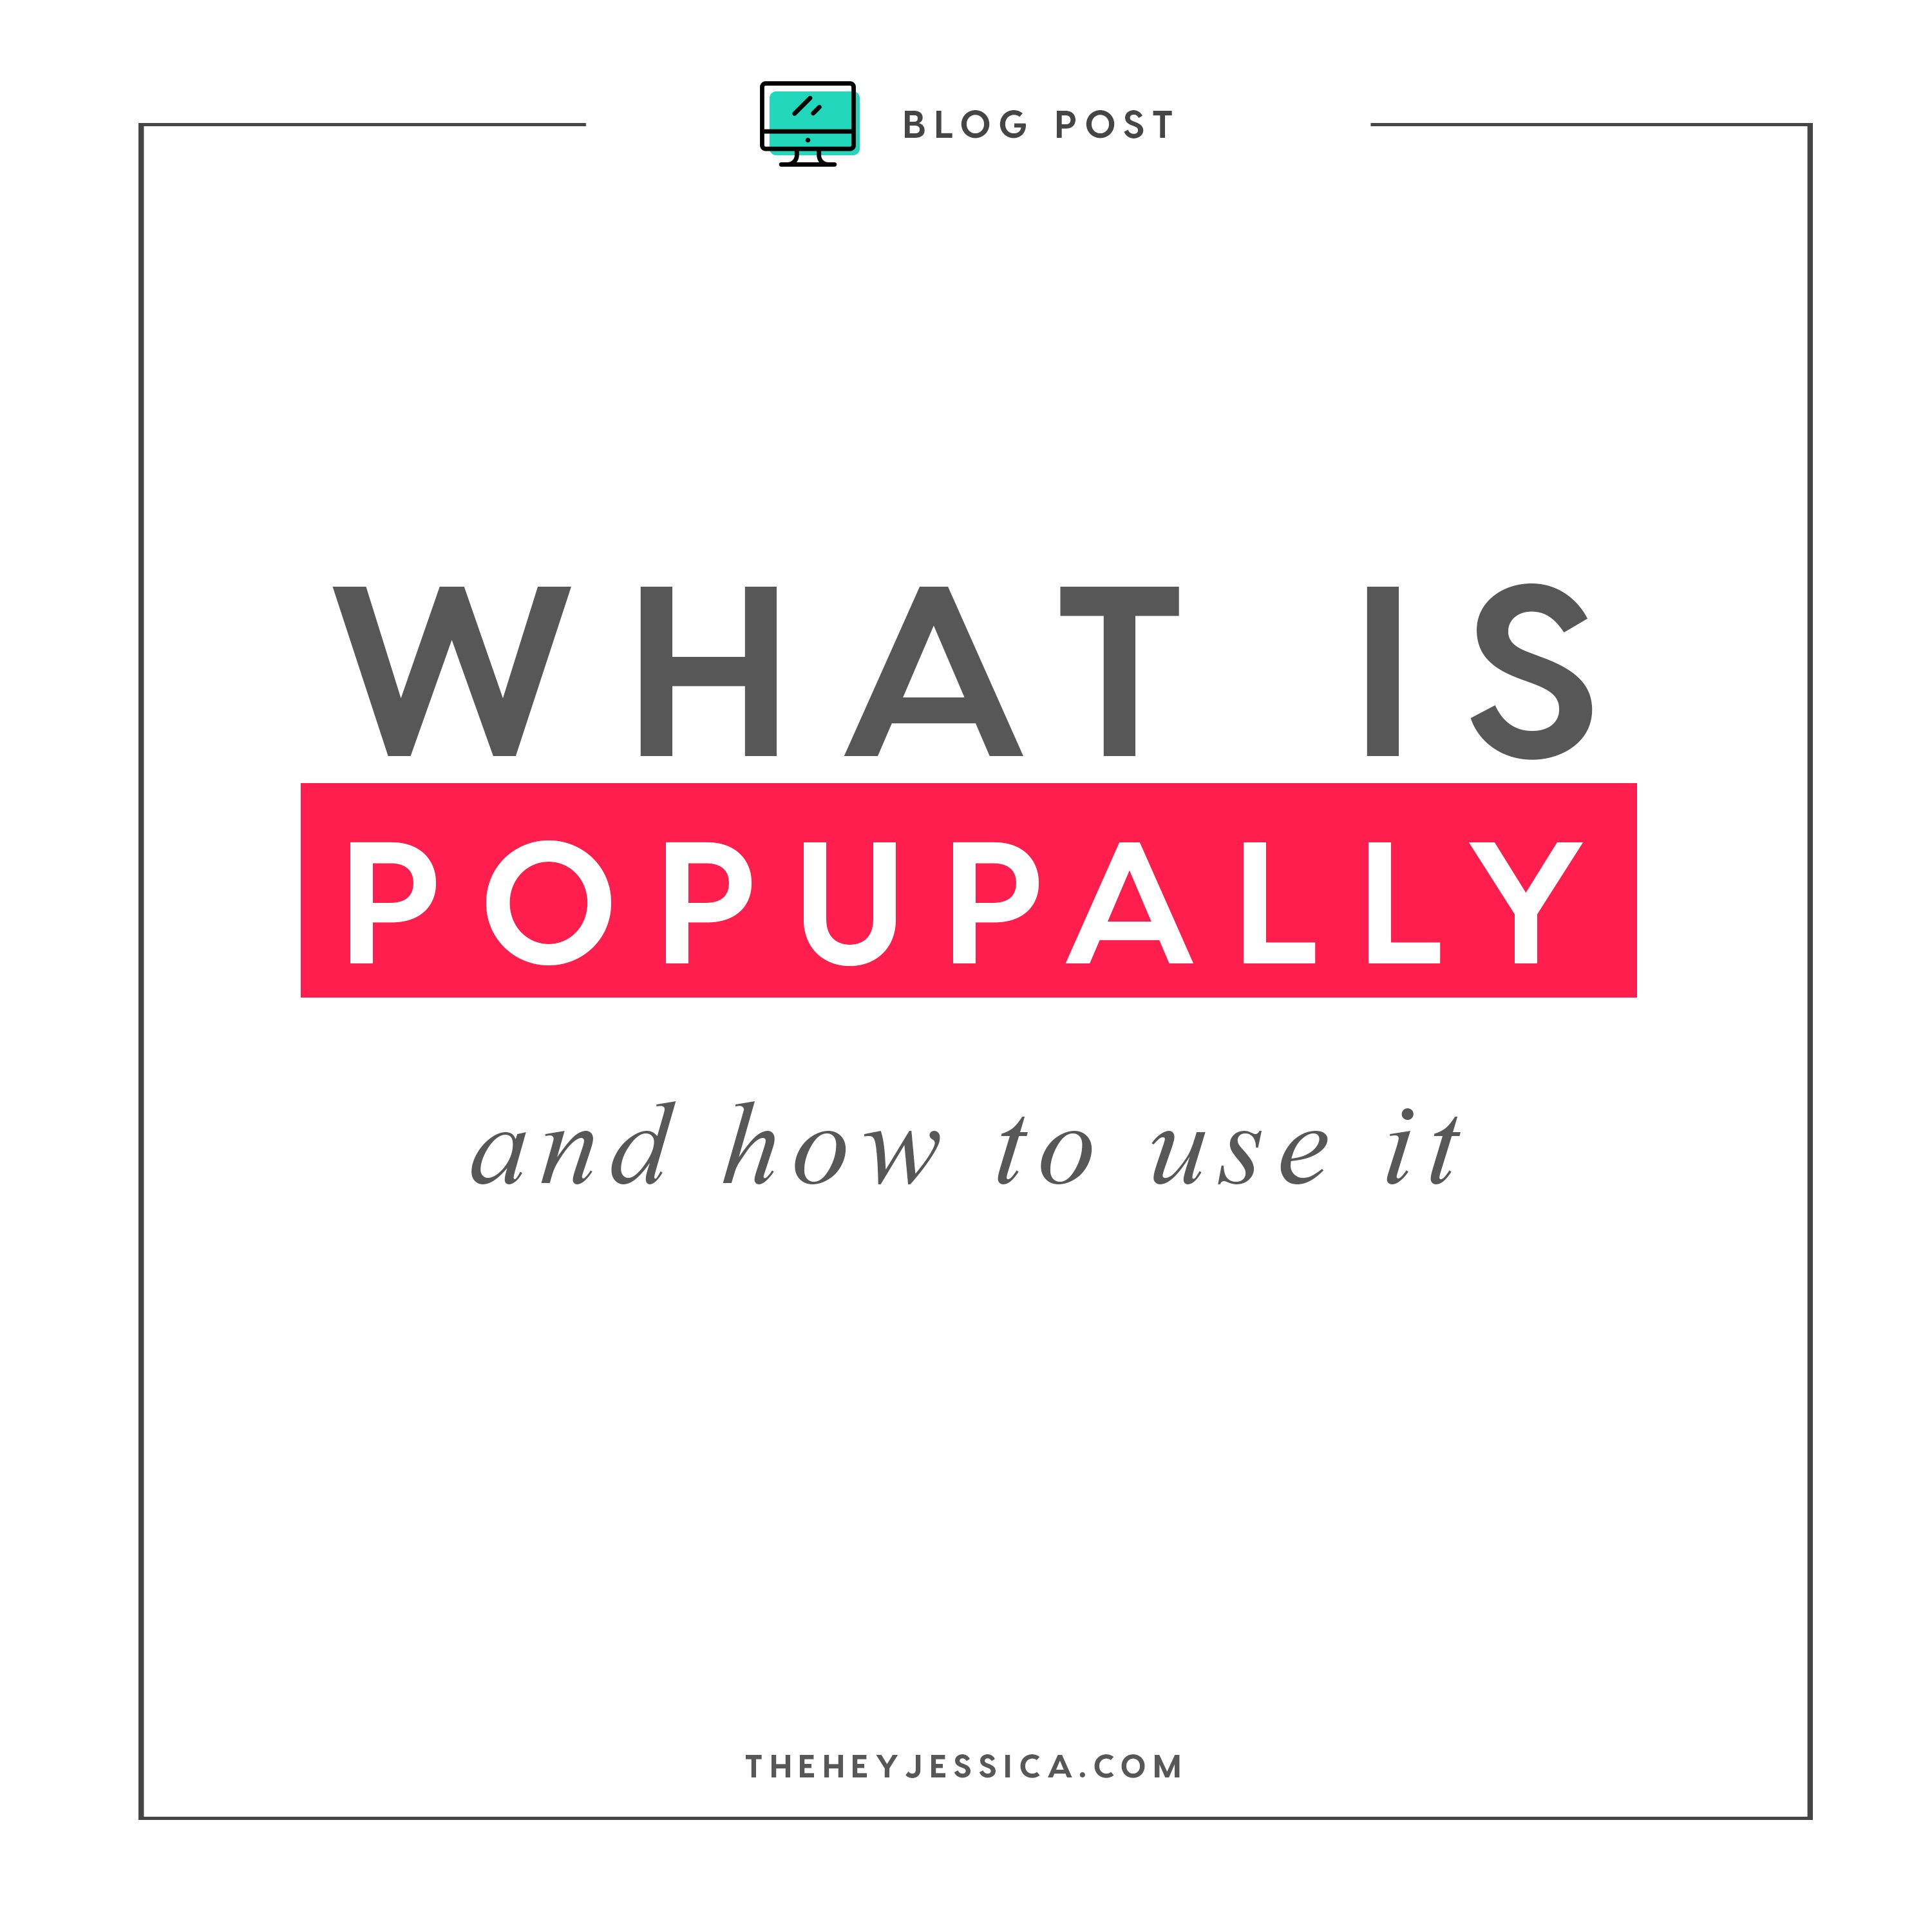 What is PopUpAlly and how do you use it?